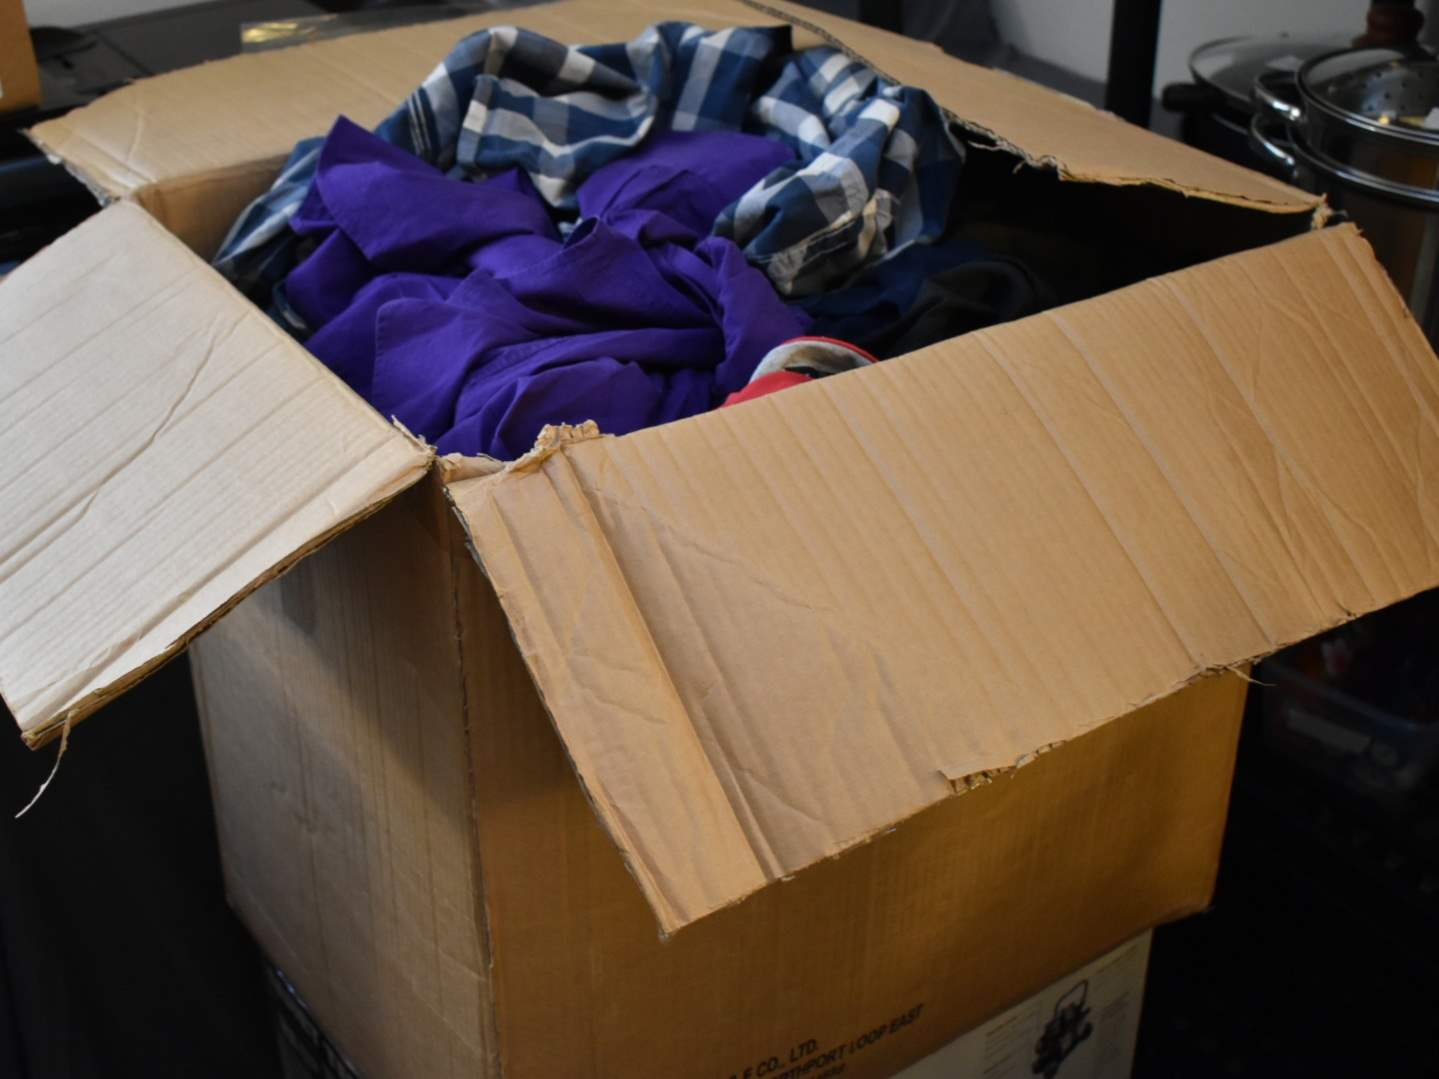 *HUGE* Box of Men's Clothes (some with tags) with Under Armor, Express, Arizona, Aeropostale, etc (Various Sizes)